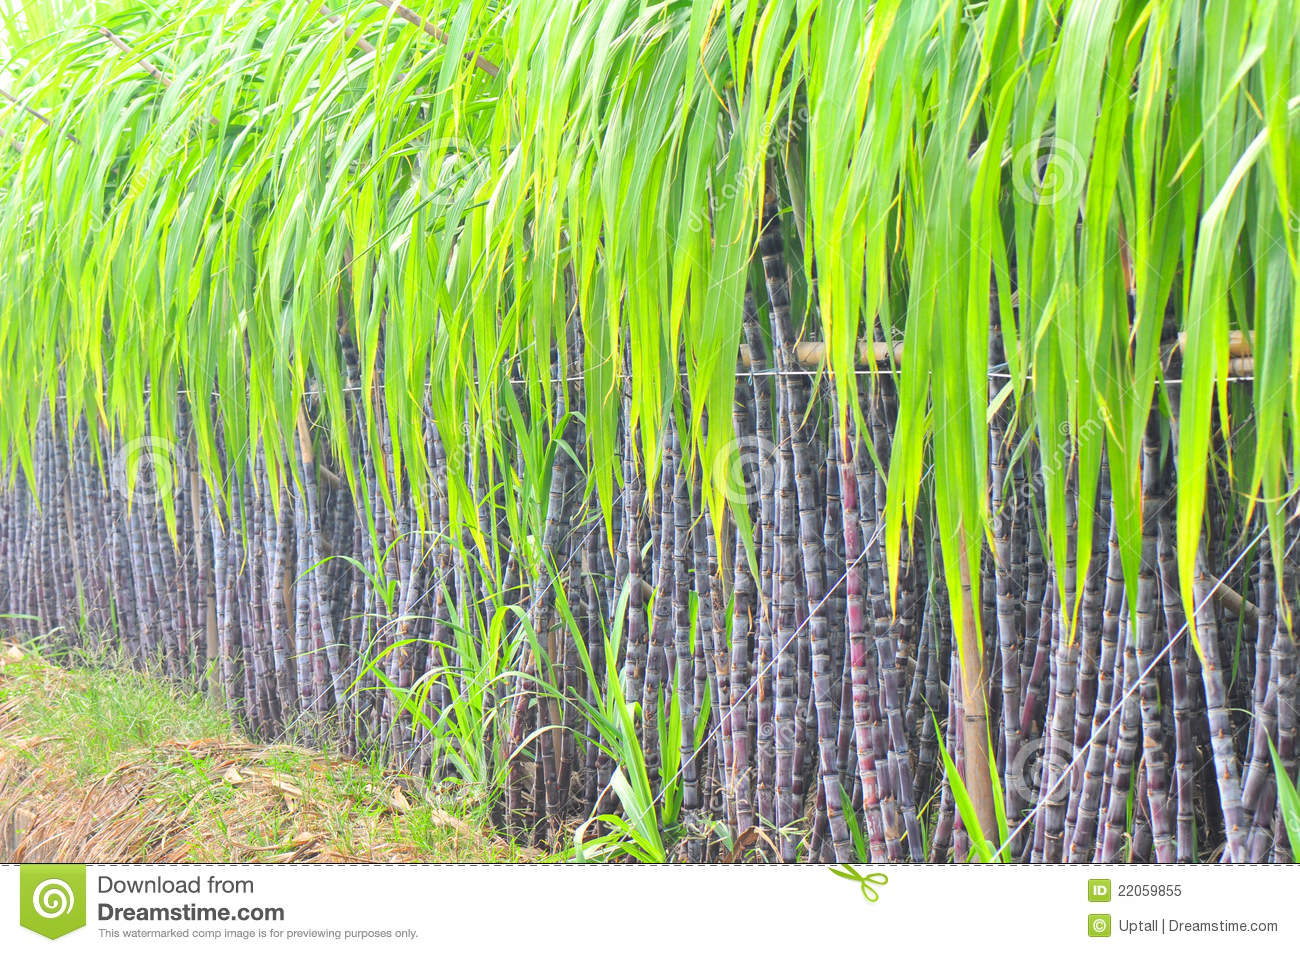 Black sugarcane plant row